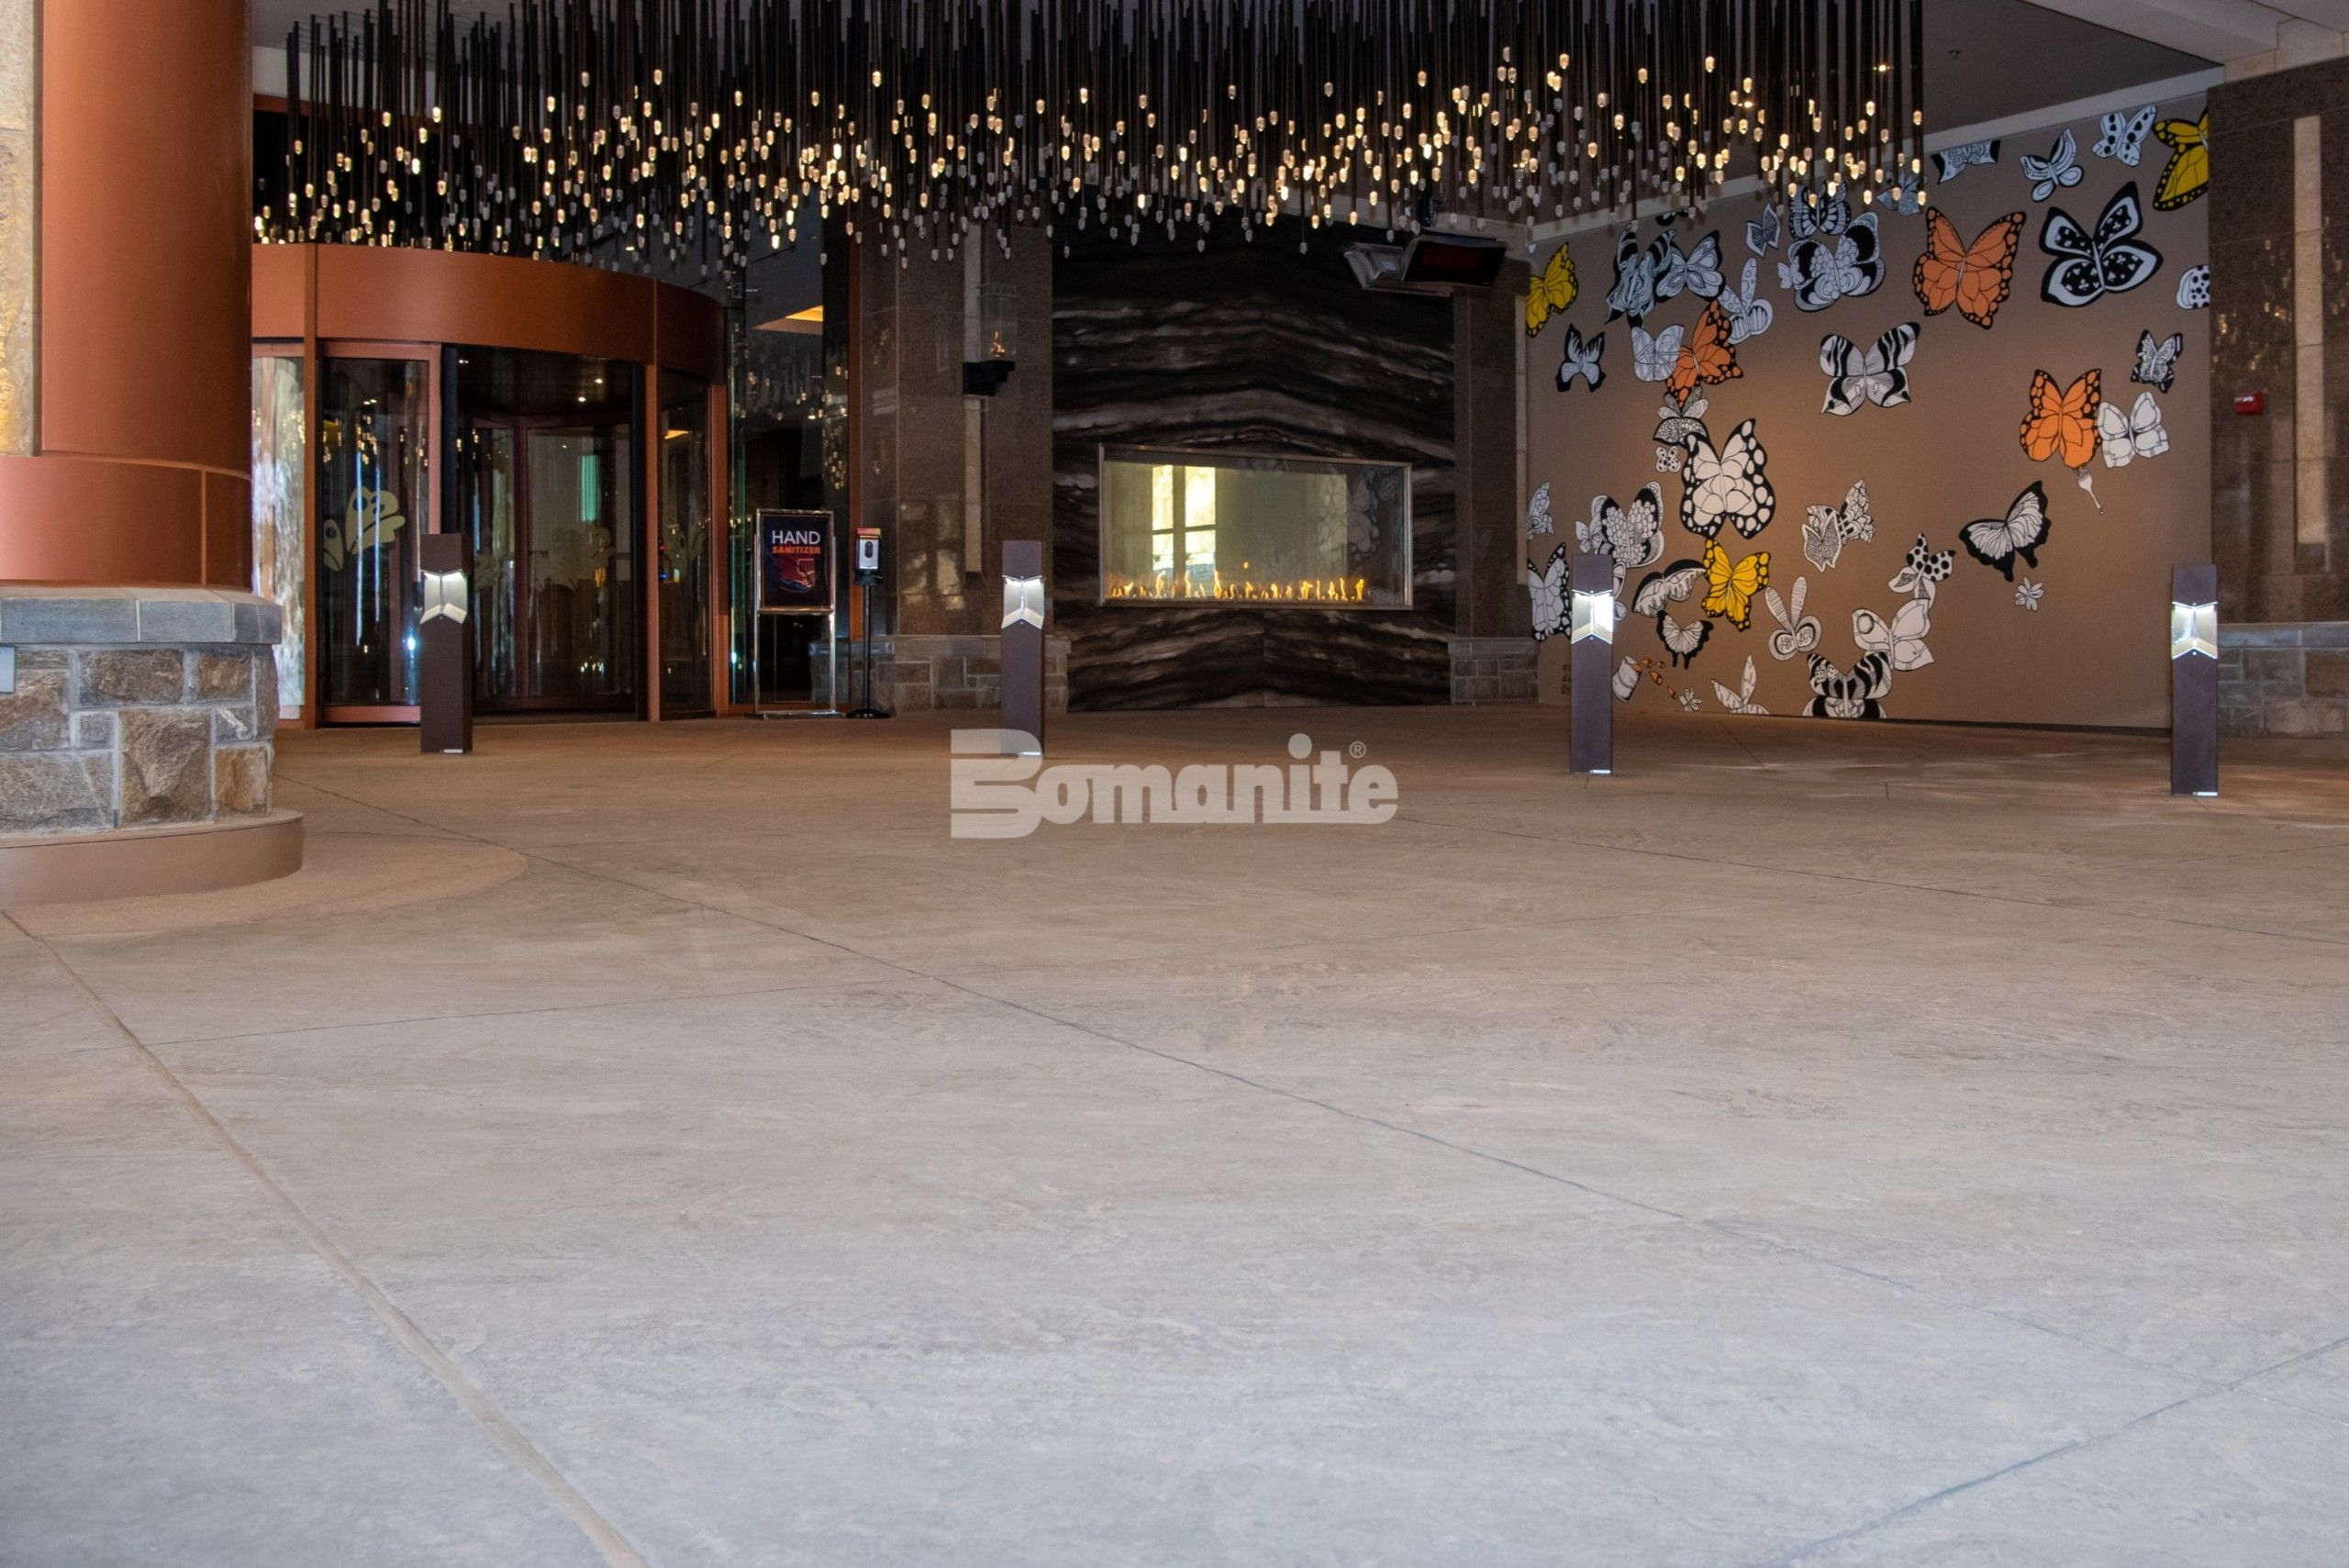 Monarch Casino Black Hawk Colorado Built a Luxury Port Cochere with Radiant Heat System installed under a Bomanite Decorative Imprinted Concrete Flooring in a Slate Texture with warm color tones provided by Bomanite Licensee Colorado Hardscapes.